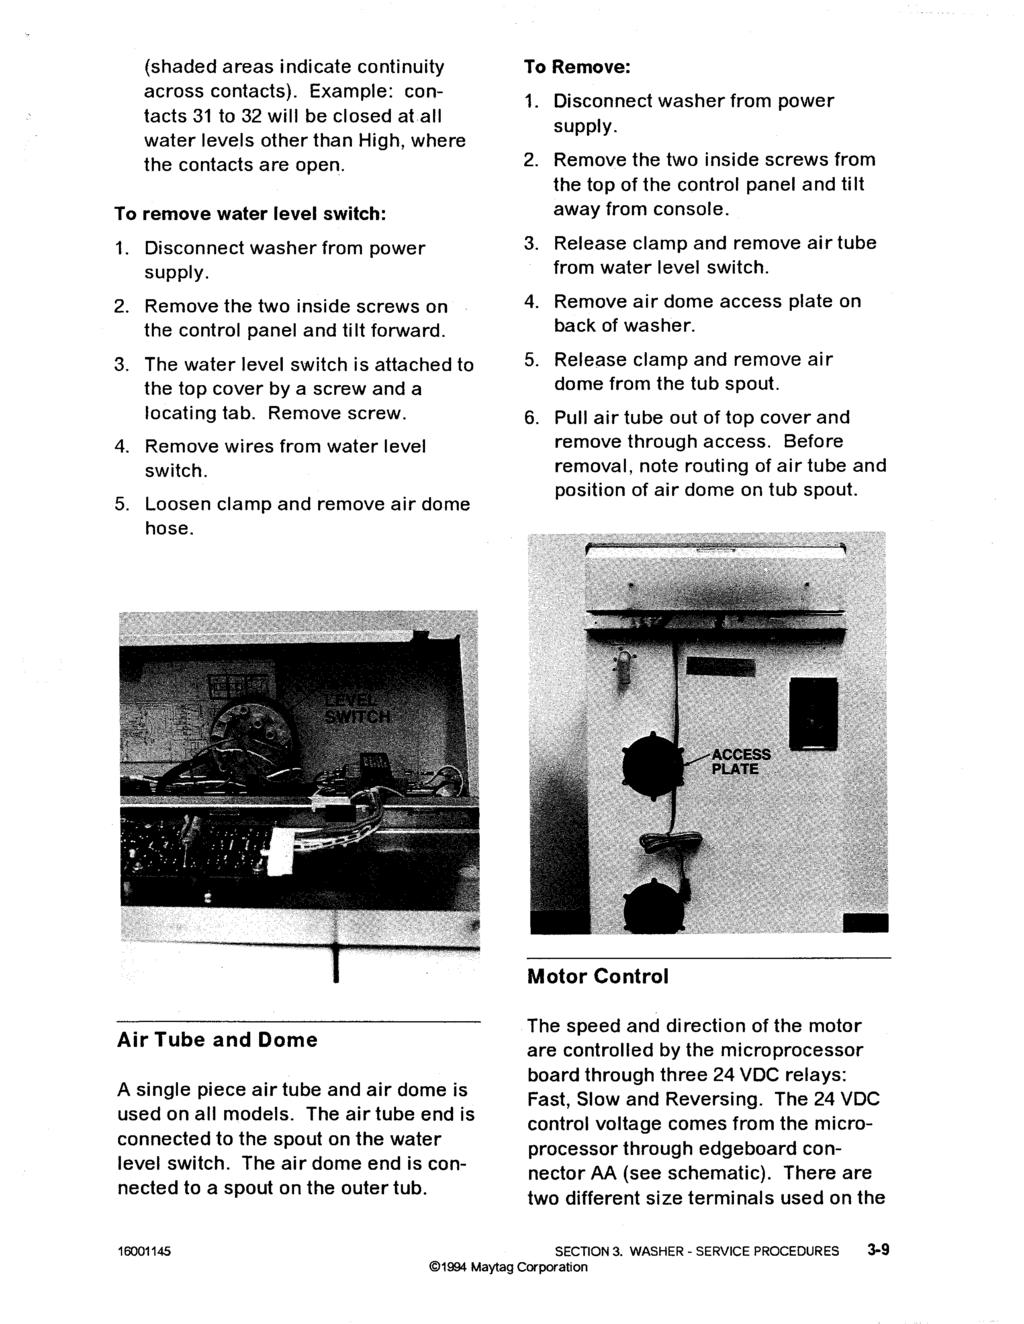 Maytag Washer Servicemanual Covering Models Issued5 94 Washing Machine Motor Wiring Diagram Besides Servce Procedures 3 8 Shaded Areas Indicate Continuity Across Contacts Example 31 To 32 Will